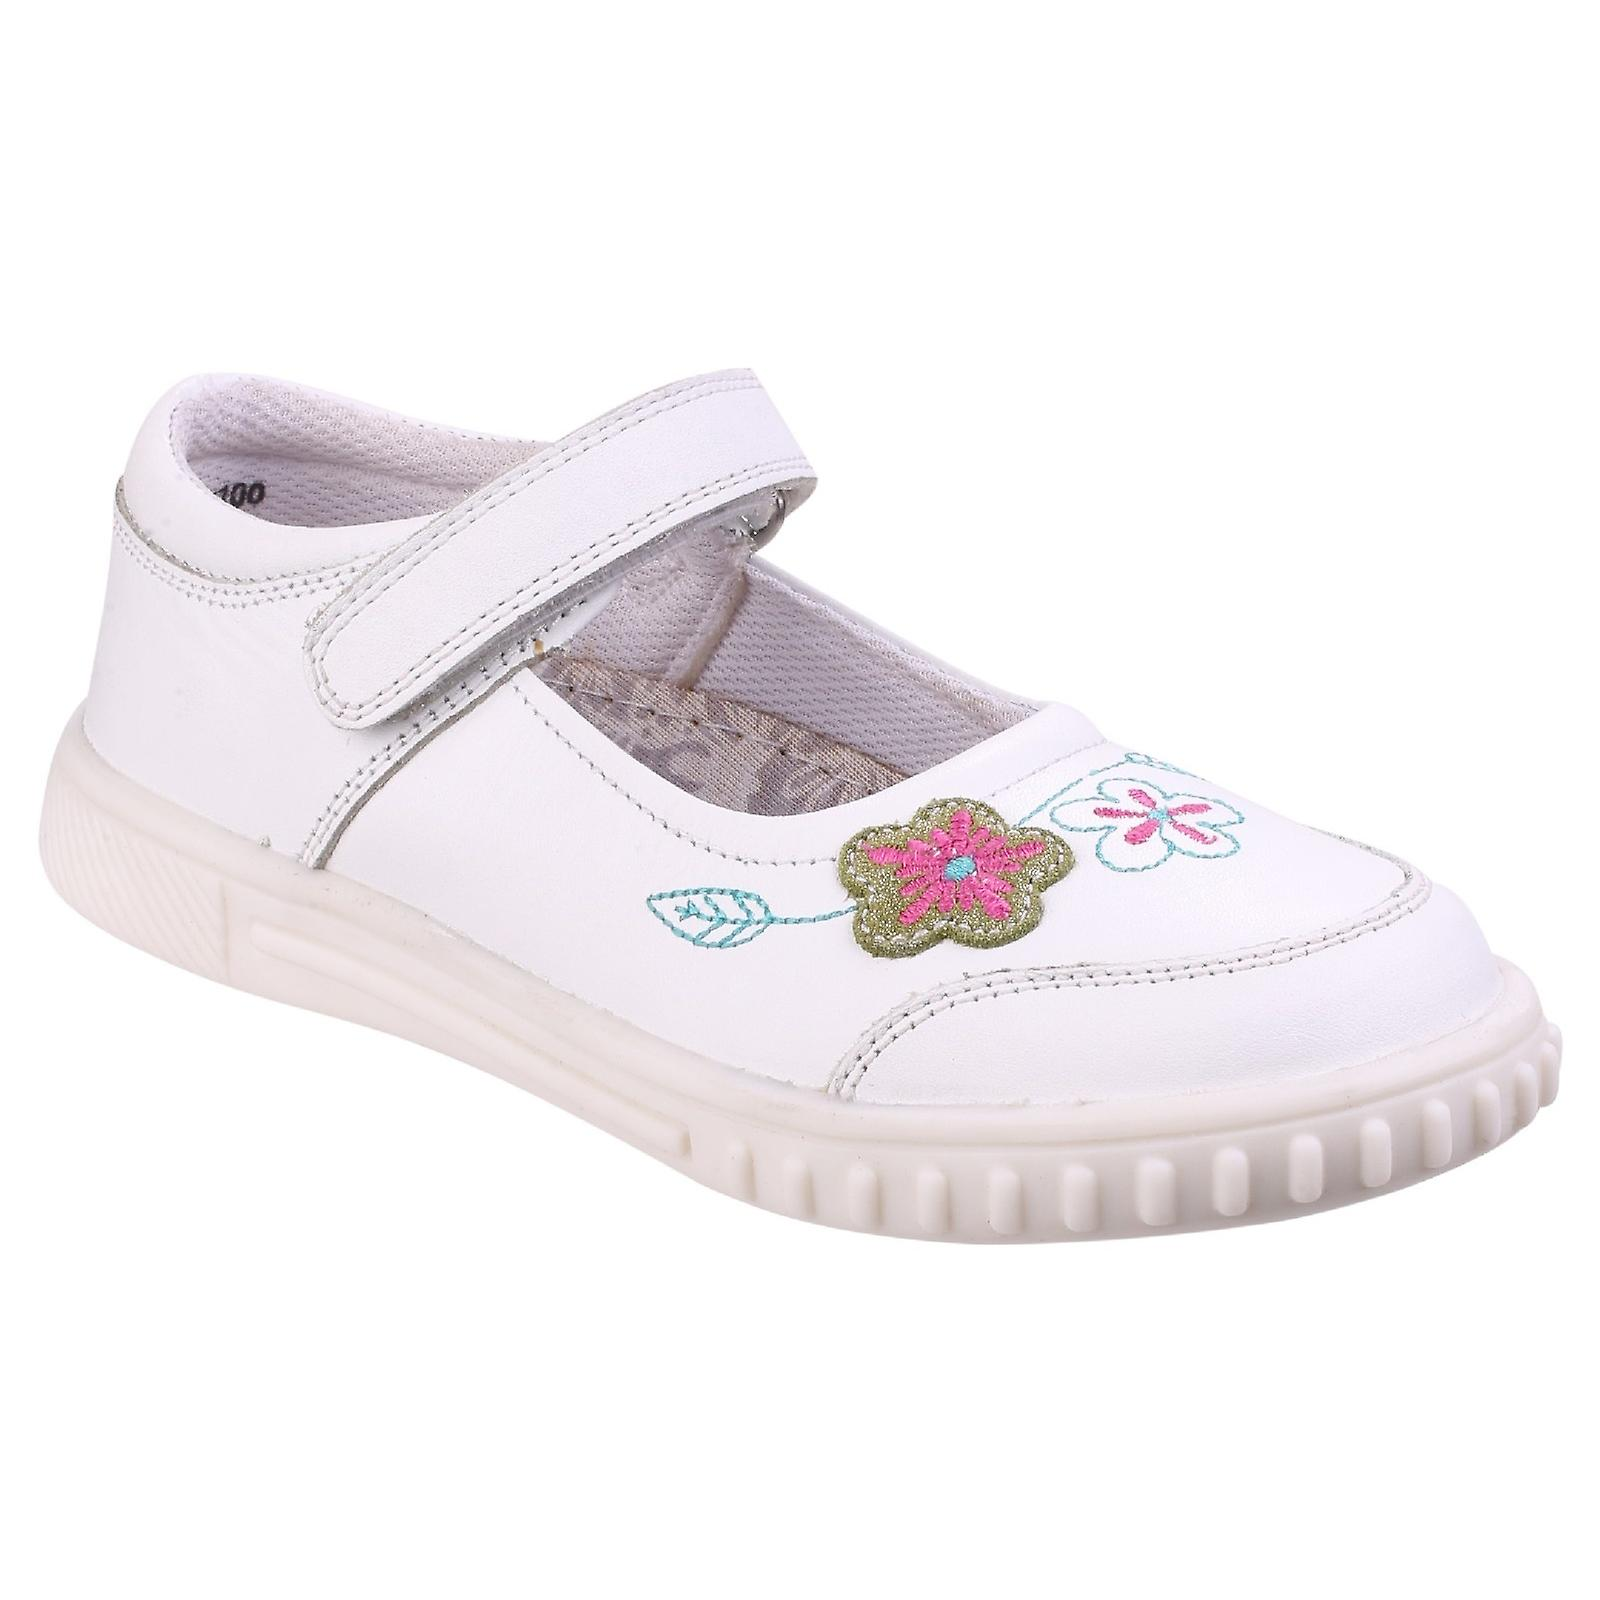 Hush Floral Puppies Childrens Girls Lottie Floral Hush Touch Fasten Shoes d8ef6e